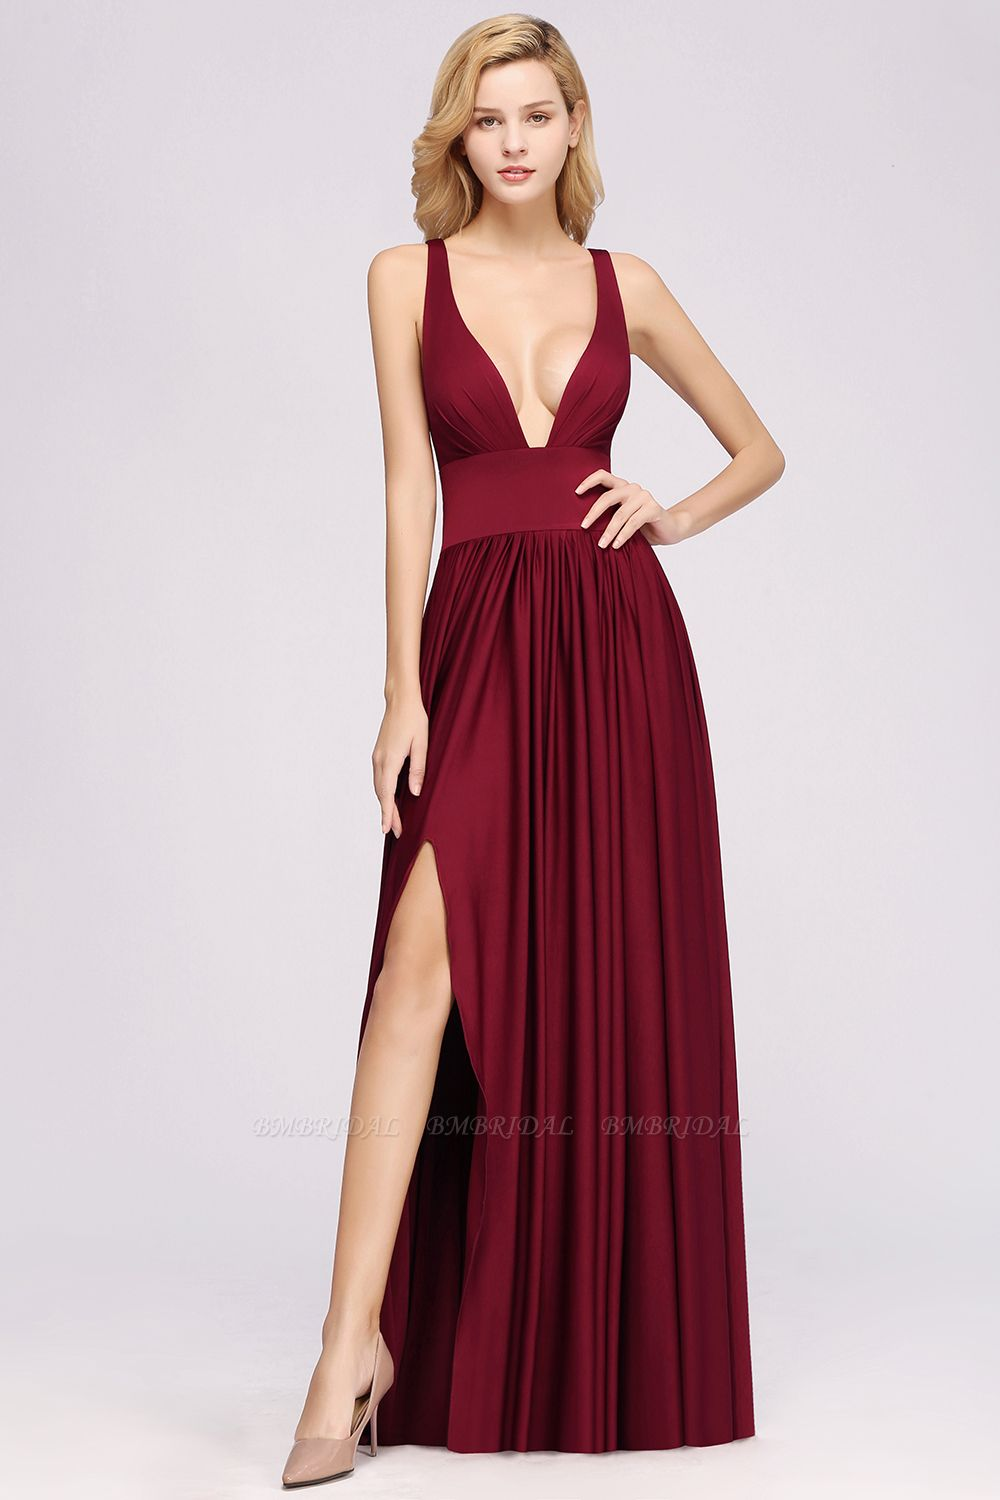 Sexy Deep V-Neck Sleeveless Bridesmaid Dress Burgundy Chiffon Wedding Party Dress